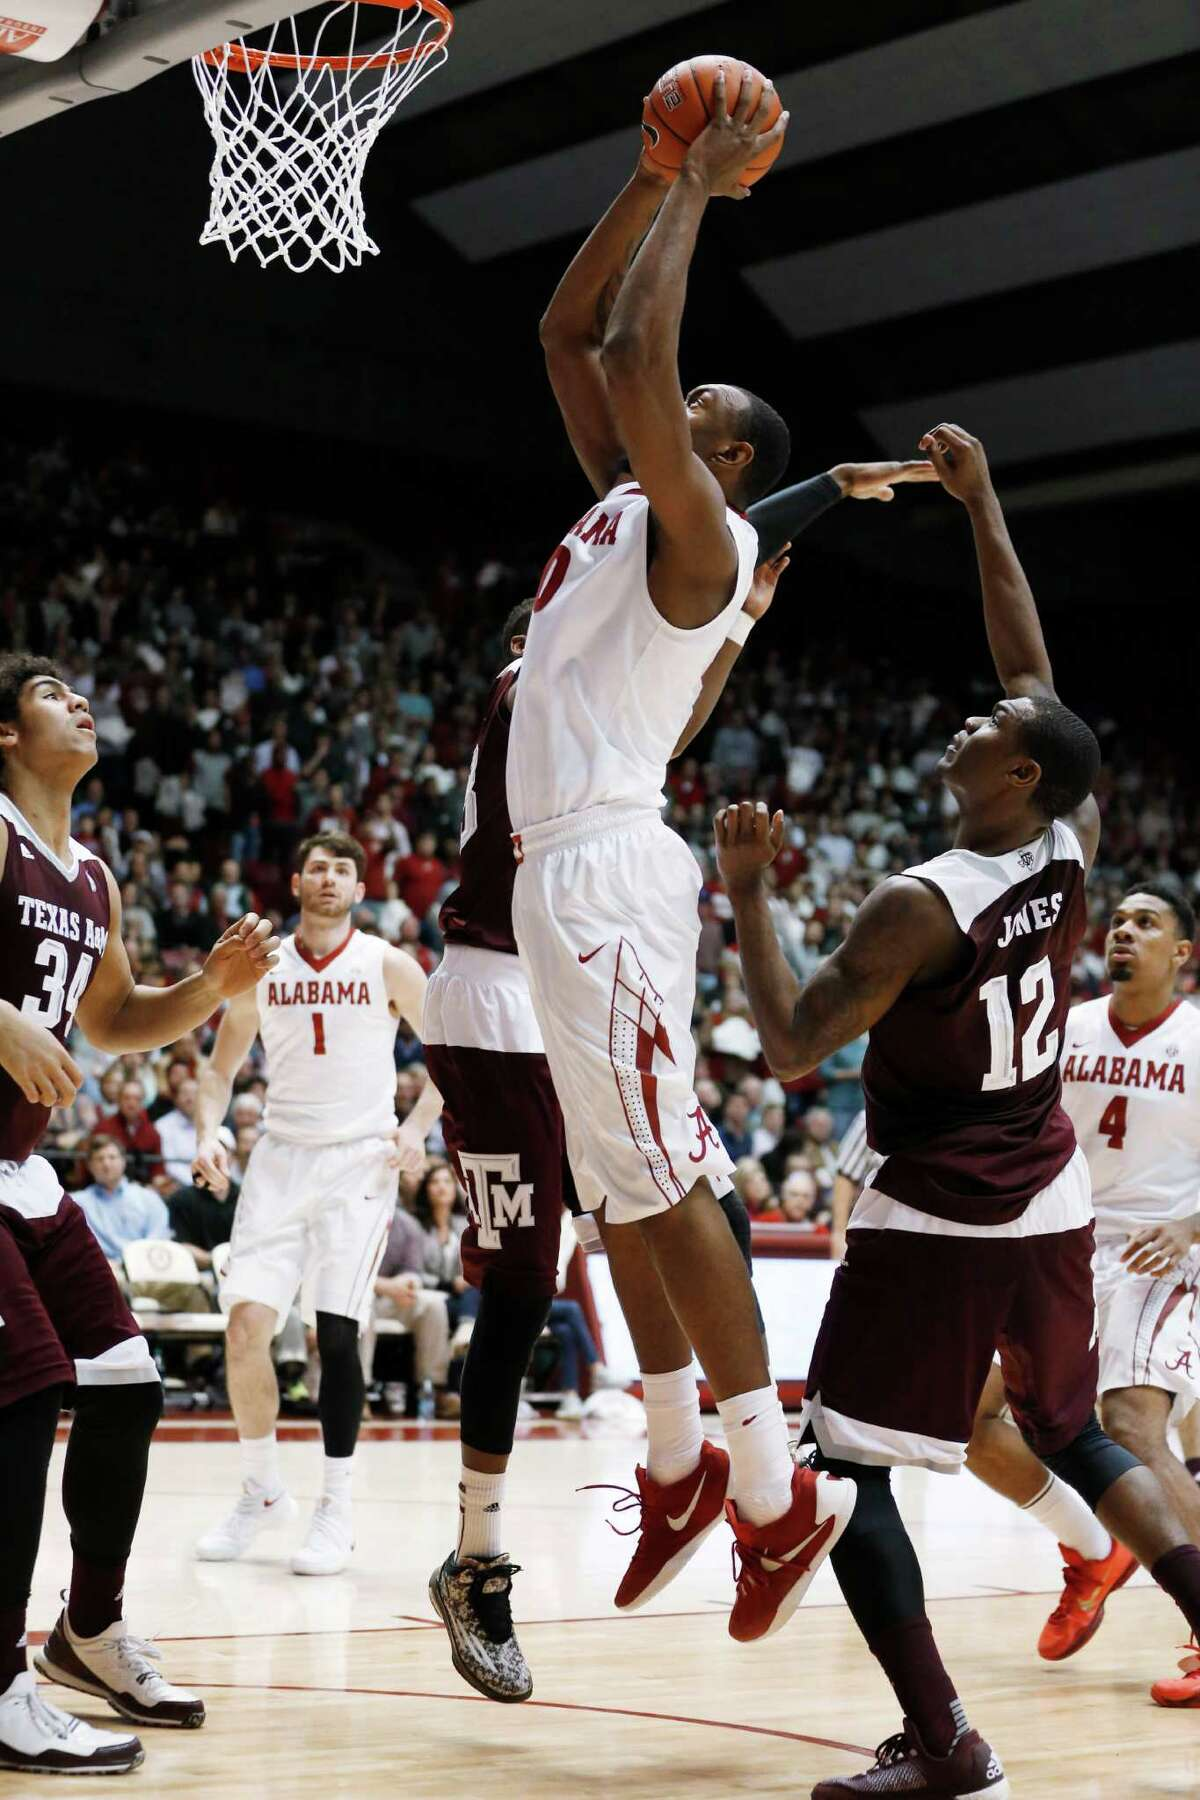 Alabama forward Jimmie Taylor (10) shoots and scores in front of Texas A&M guard Jalen Jones (12) during the second half of an NCAA college basketball game Wednesday, Feb. 10, 2016, in Tuscaloosa, Ala. Alabama won 63-62. (AP Photo/Brynn Anderson)